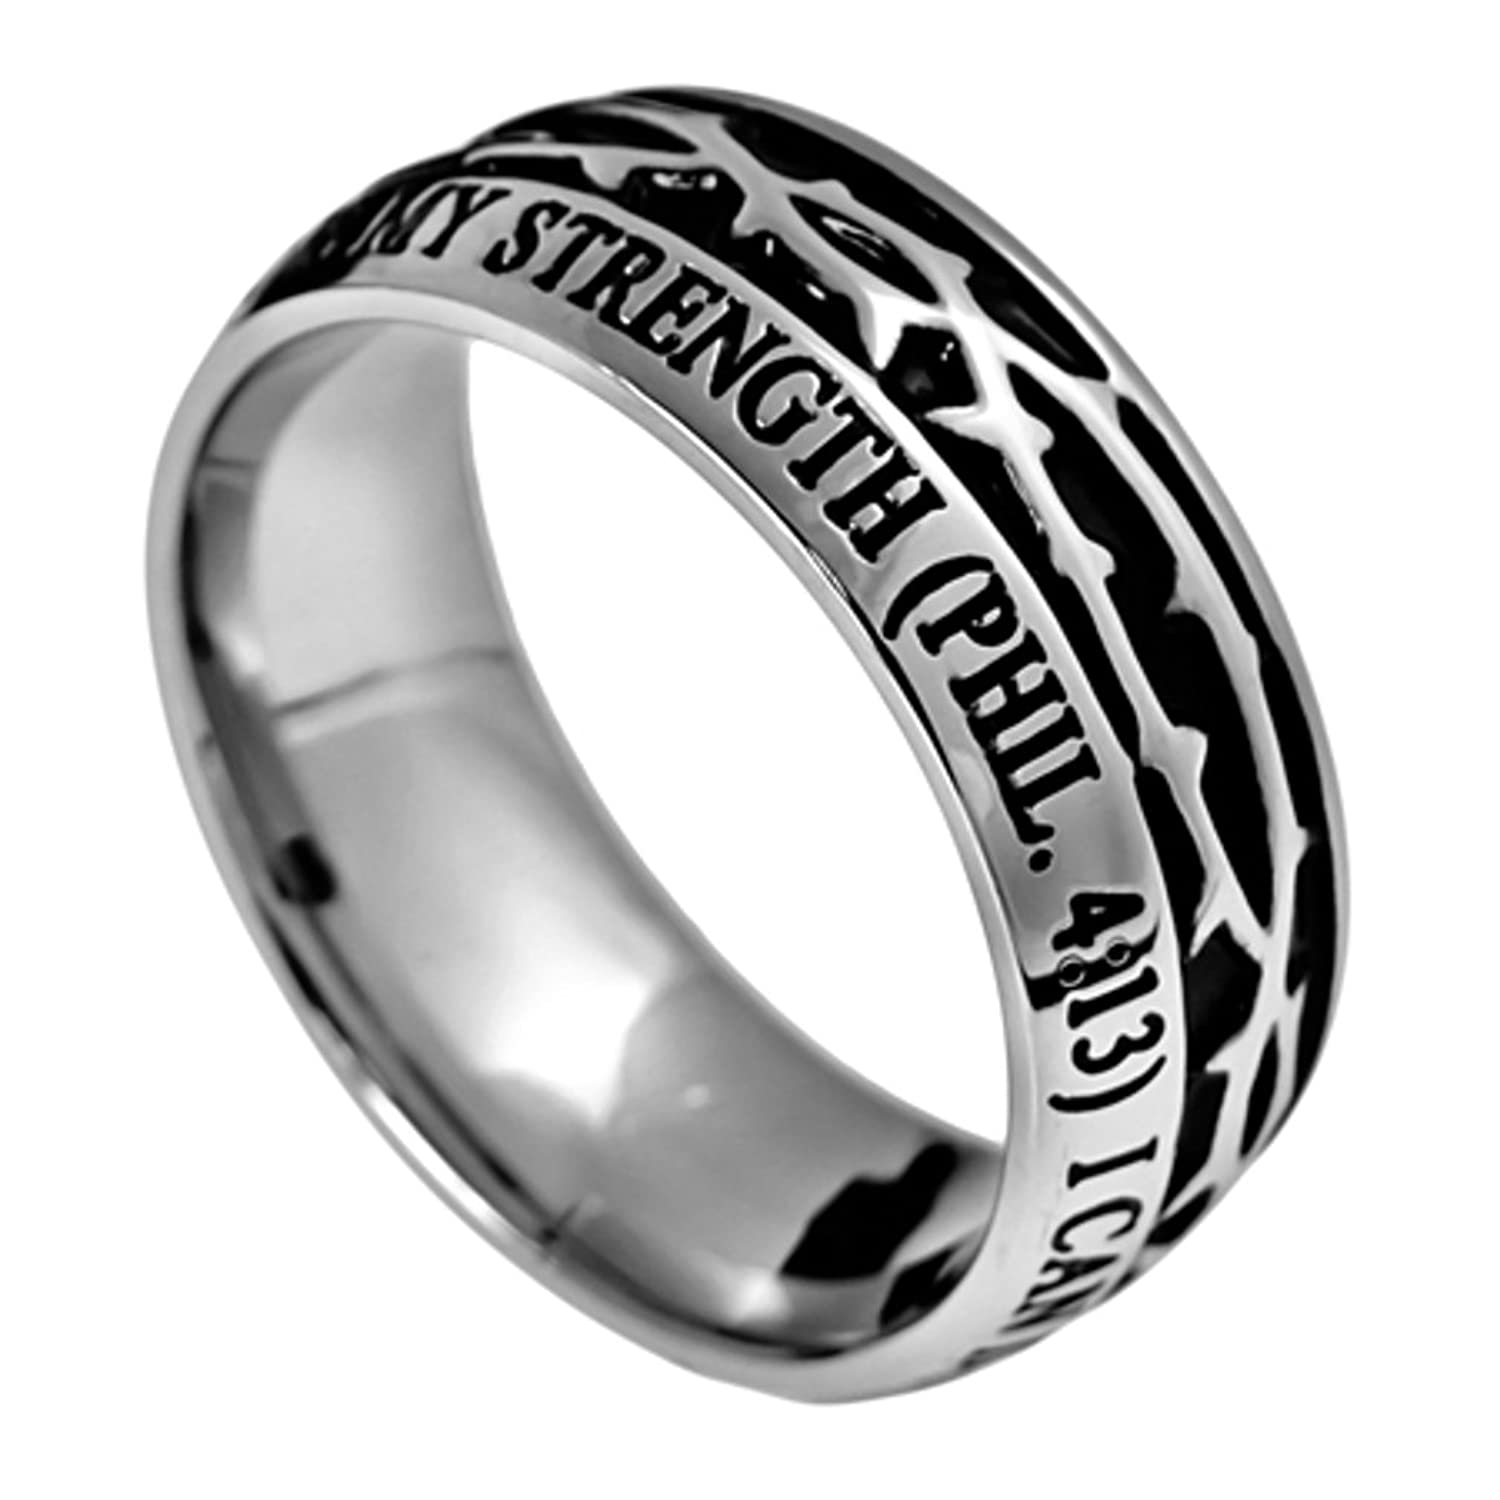 Philippians 4 13 Crown of Thorns Ring Stainless Steel Christian